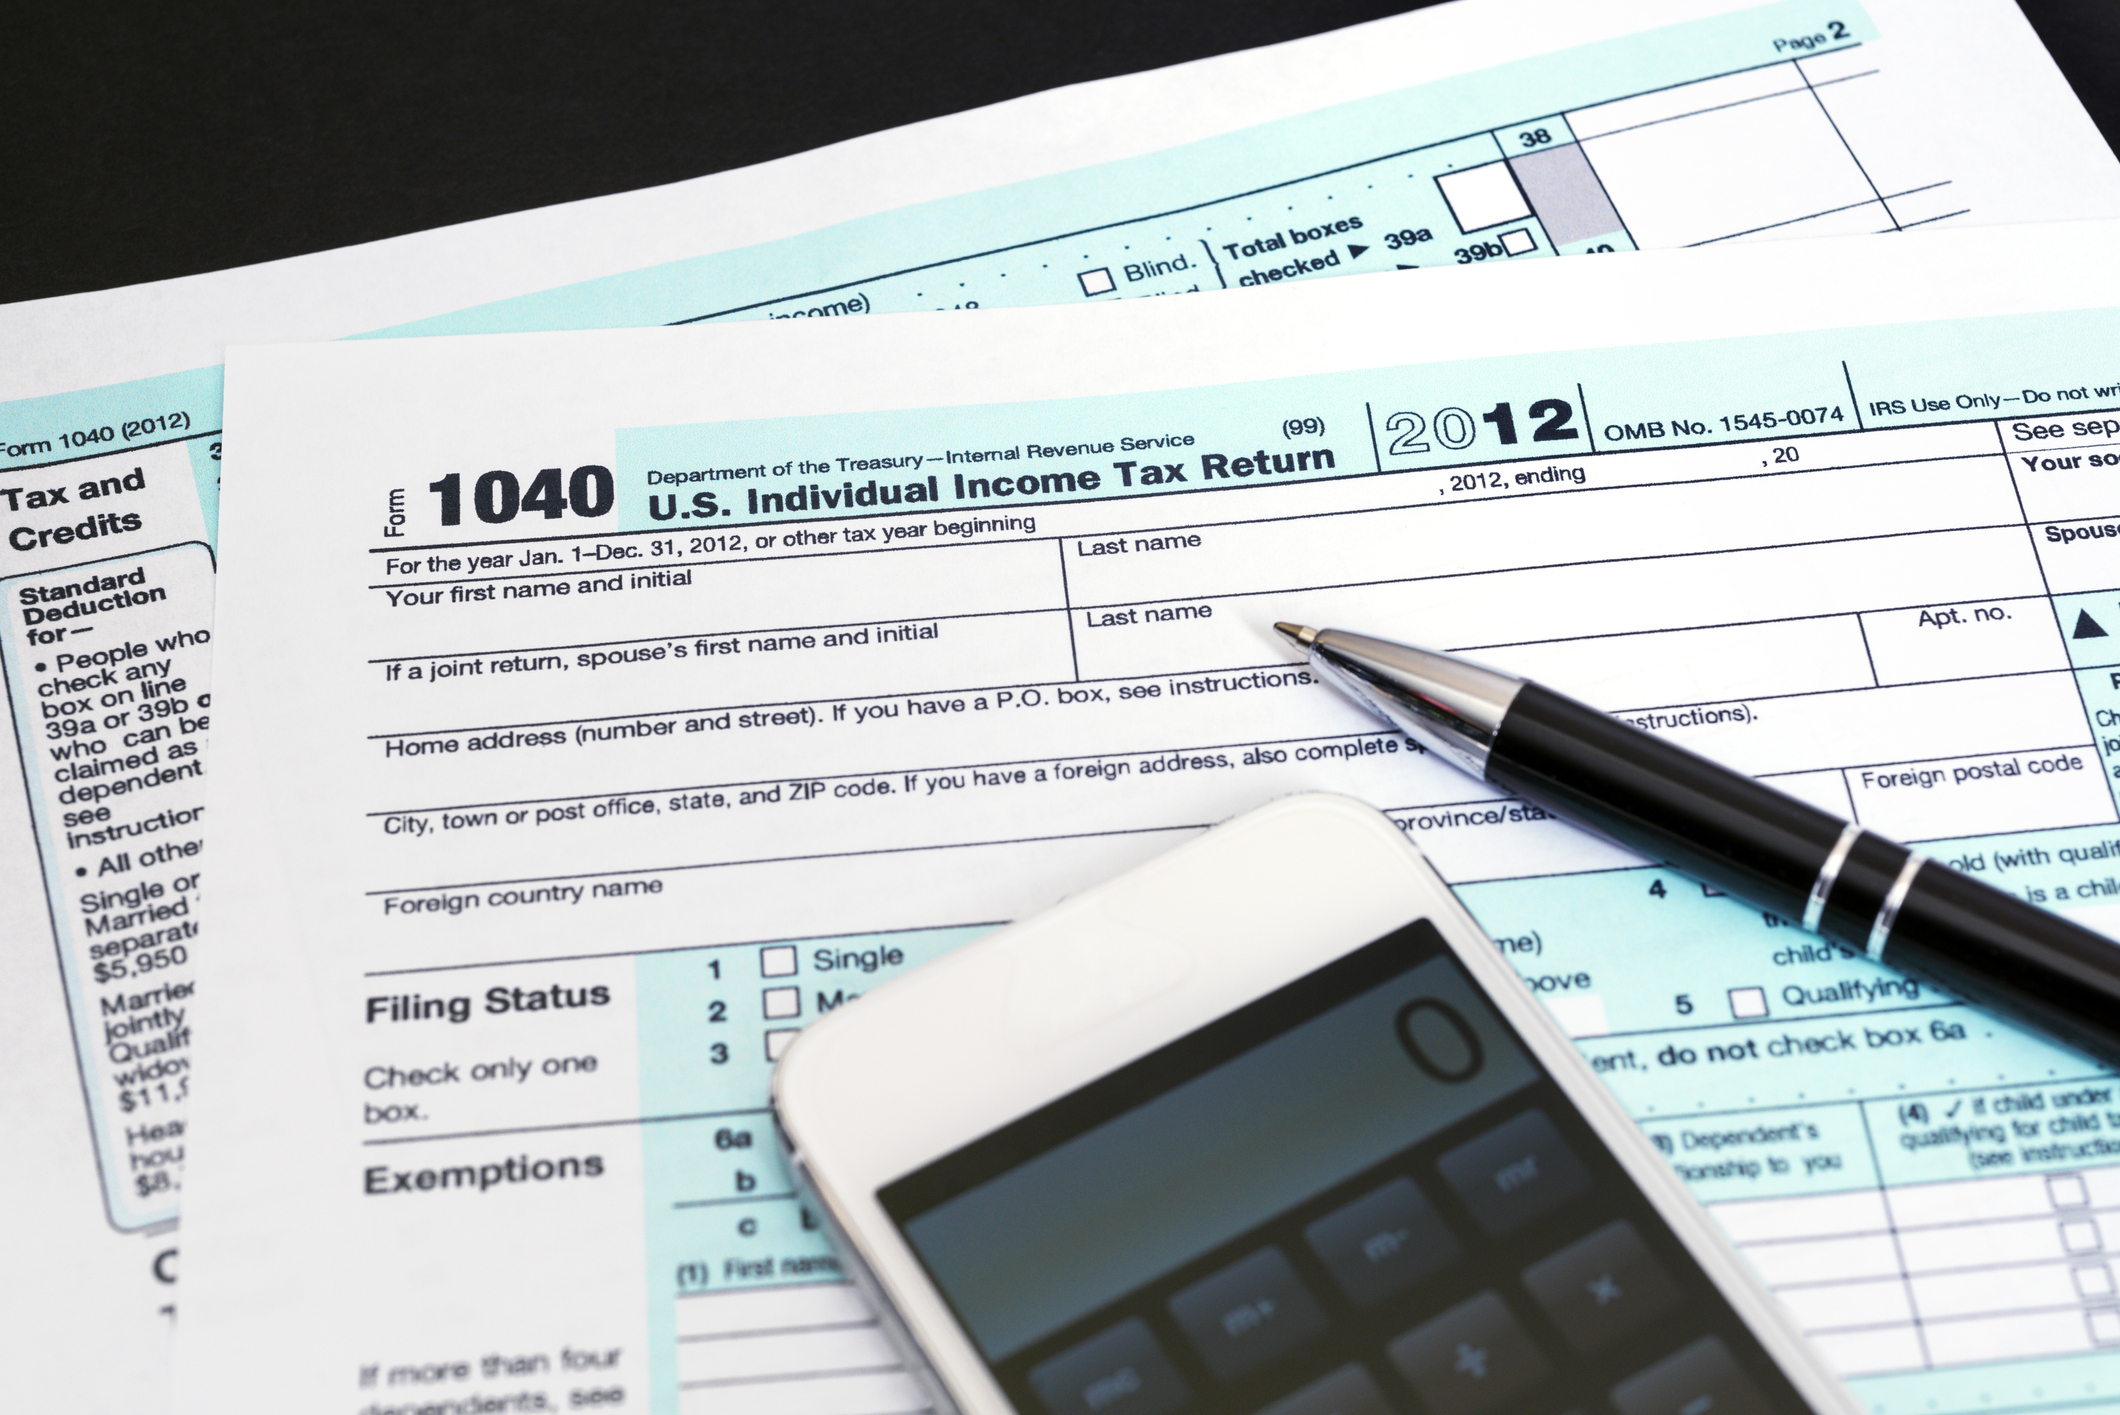 1040 tax forms with a phone and pen